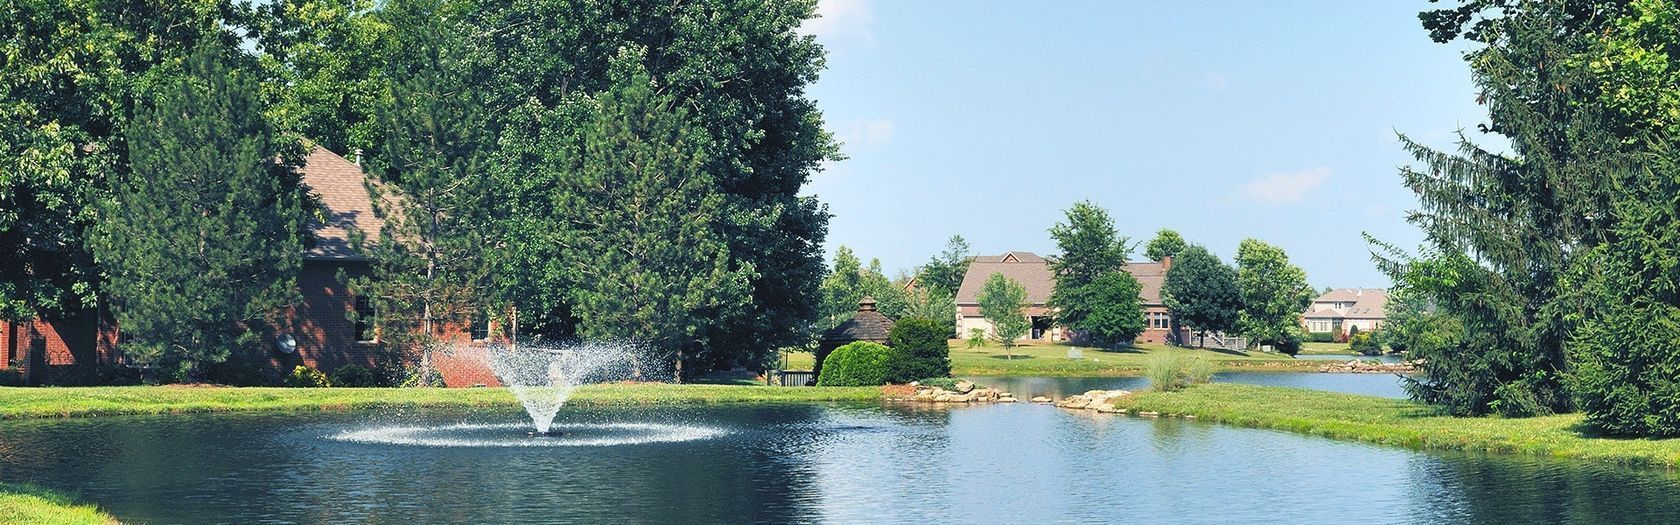 lake fountains and pond aeration and pond maintenance